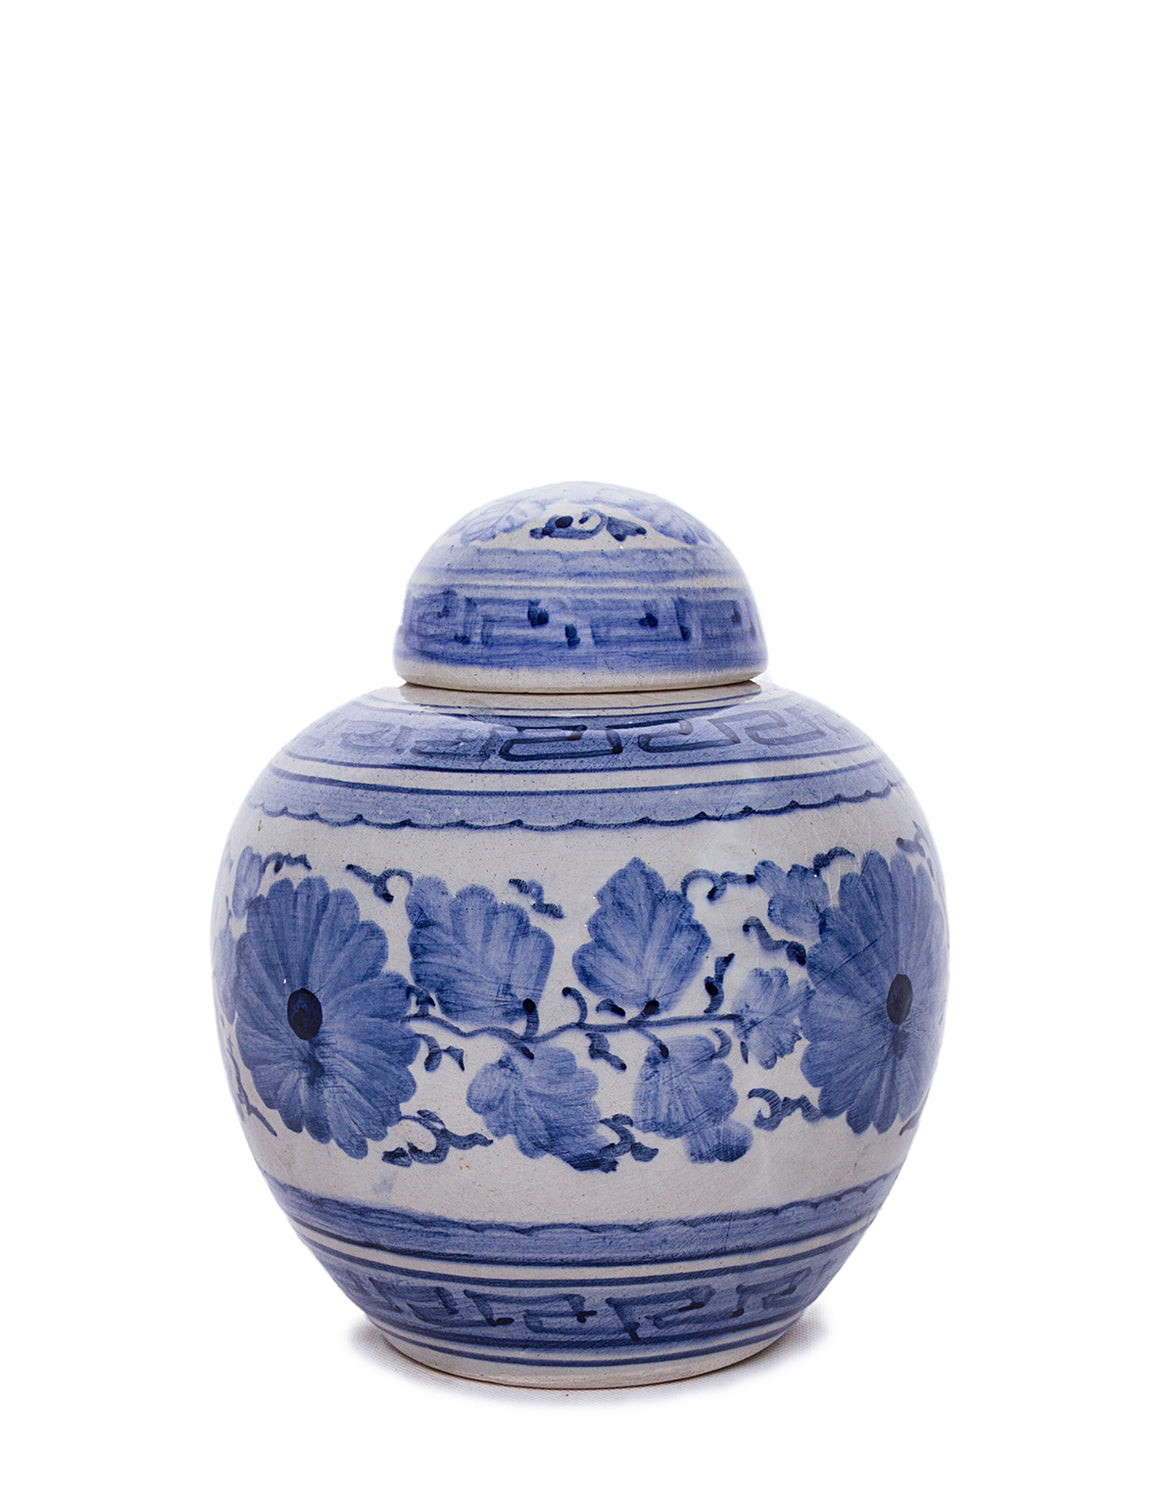 Blue and White Hand Thrown Ceramic Petite Ginger Jar